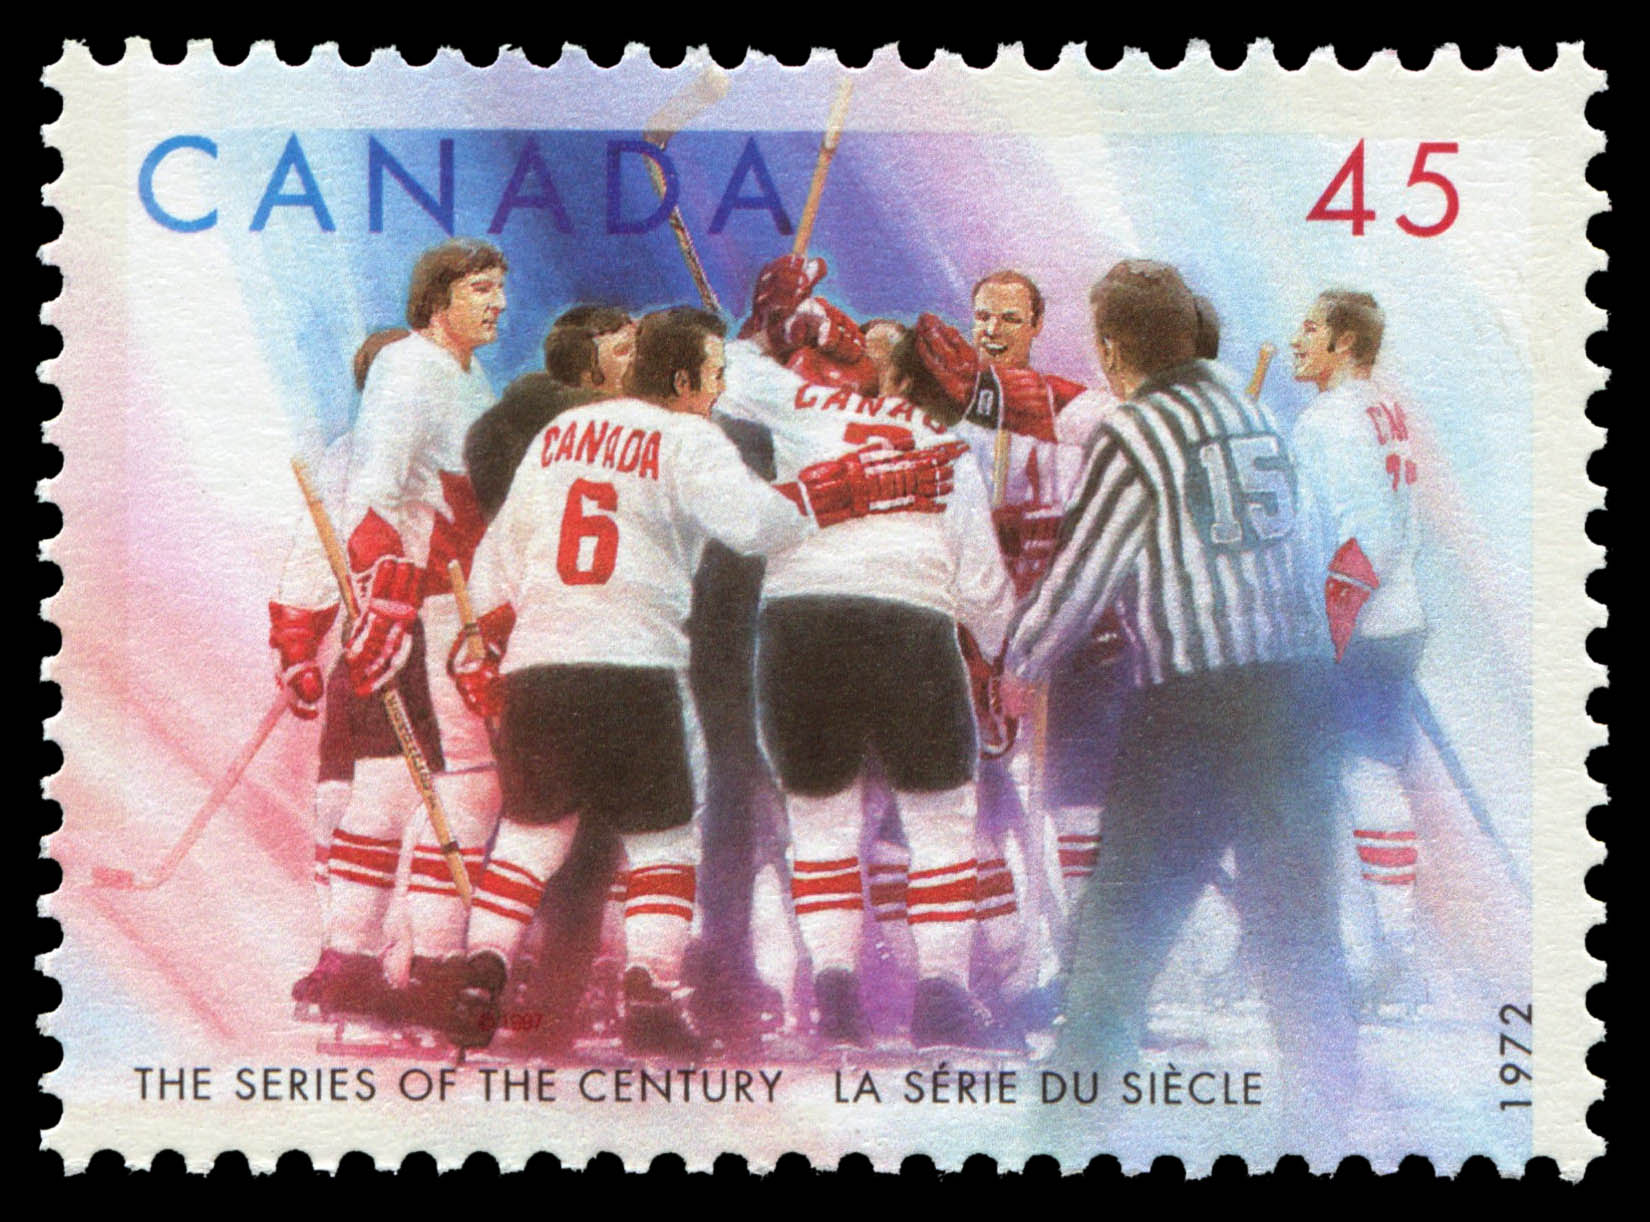 Canadian Team Members Celebrating Canada Postage Stamp   The Series of the Century, 1972